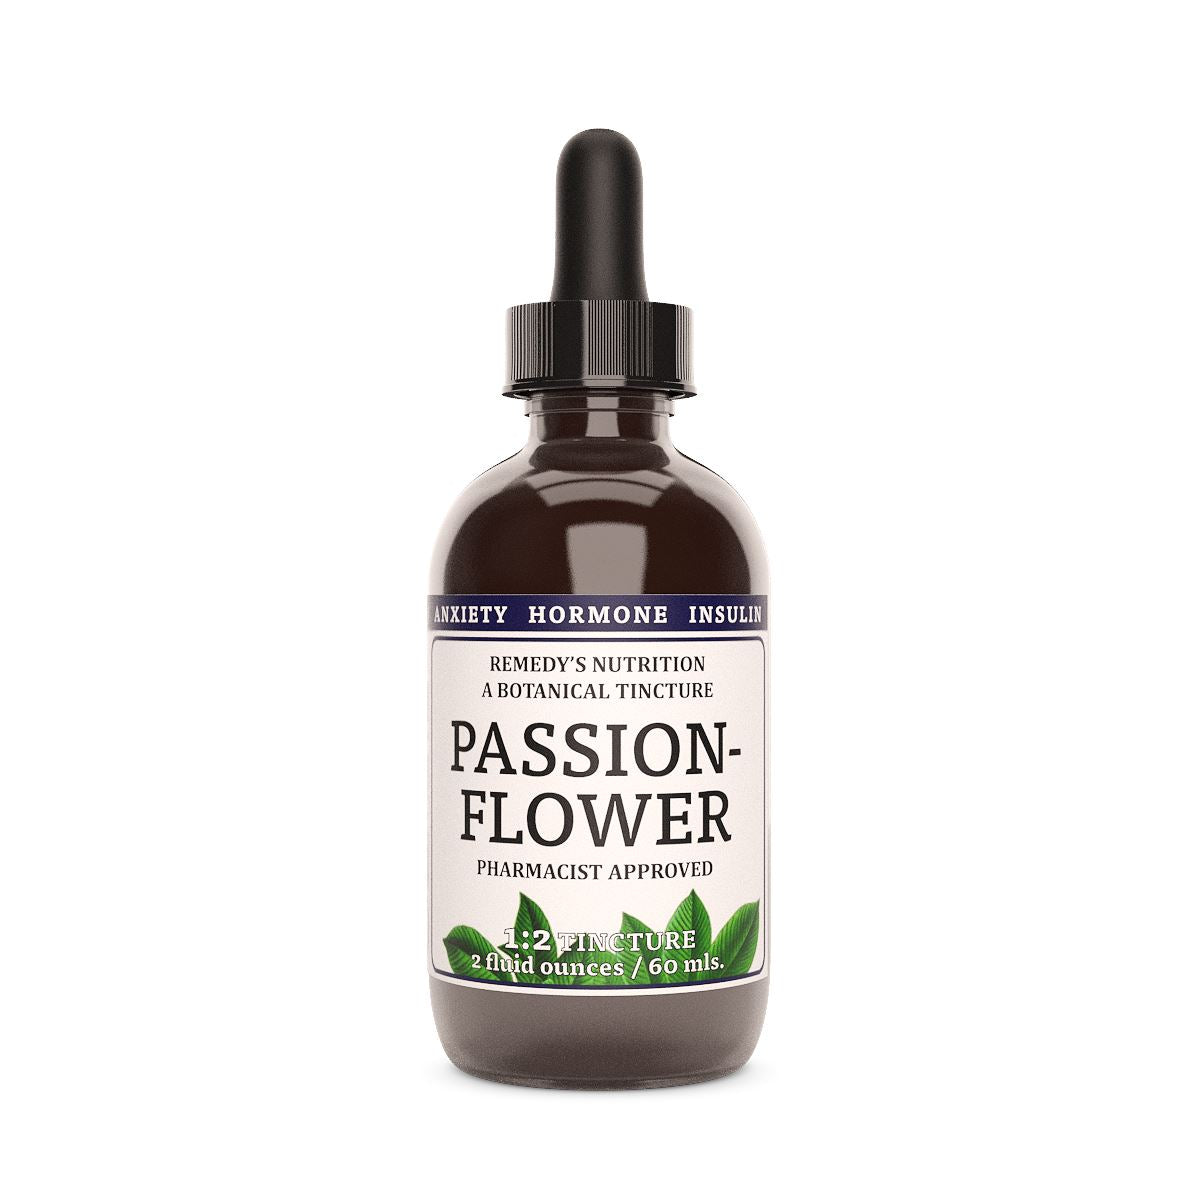 Remedy's Nutrition® Passionflower Tincture